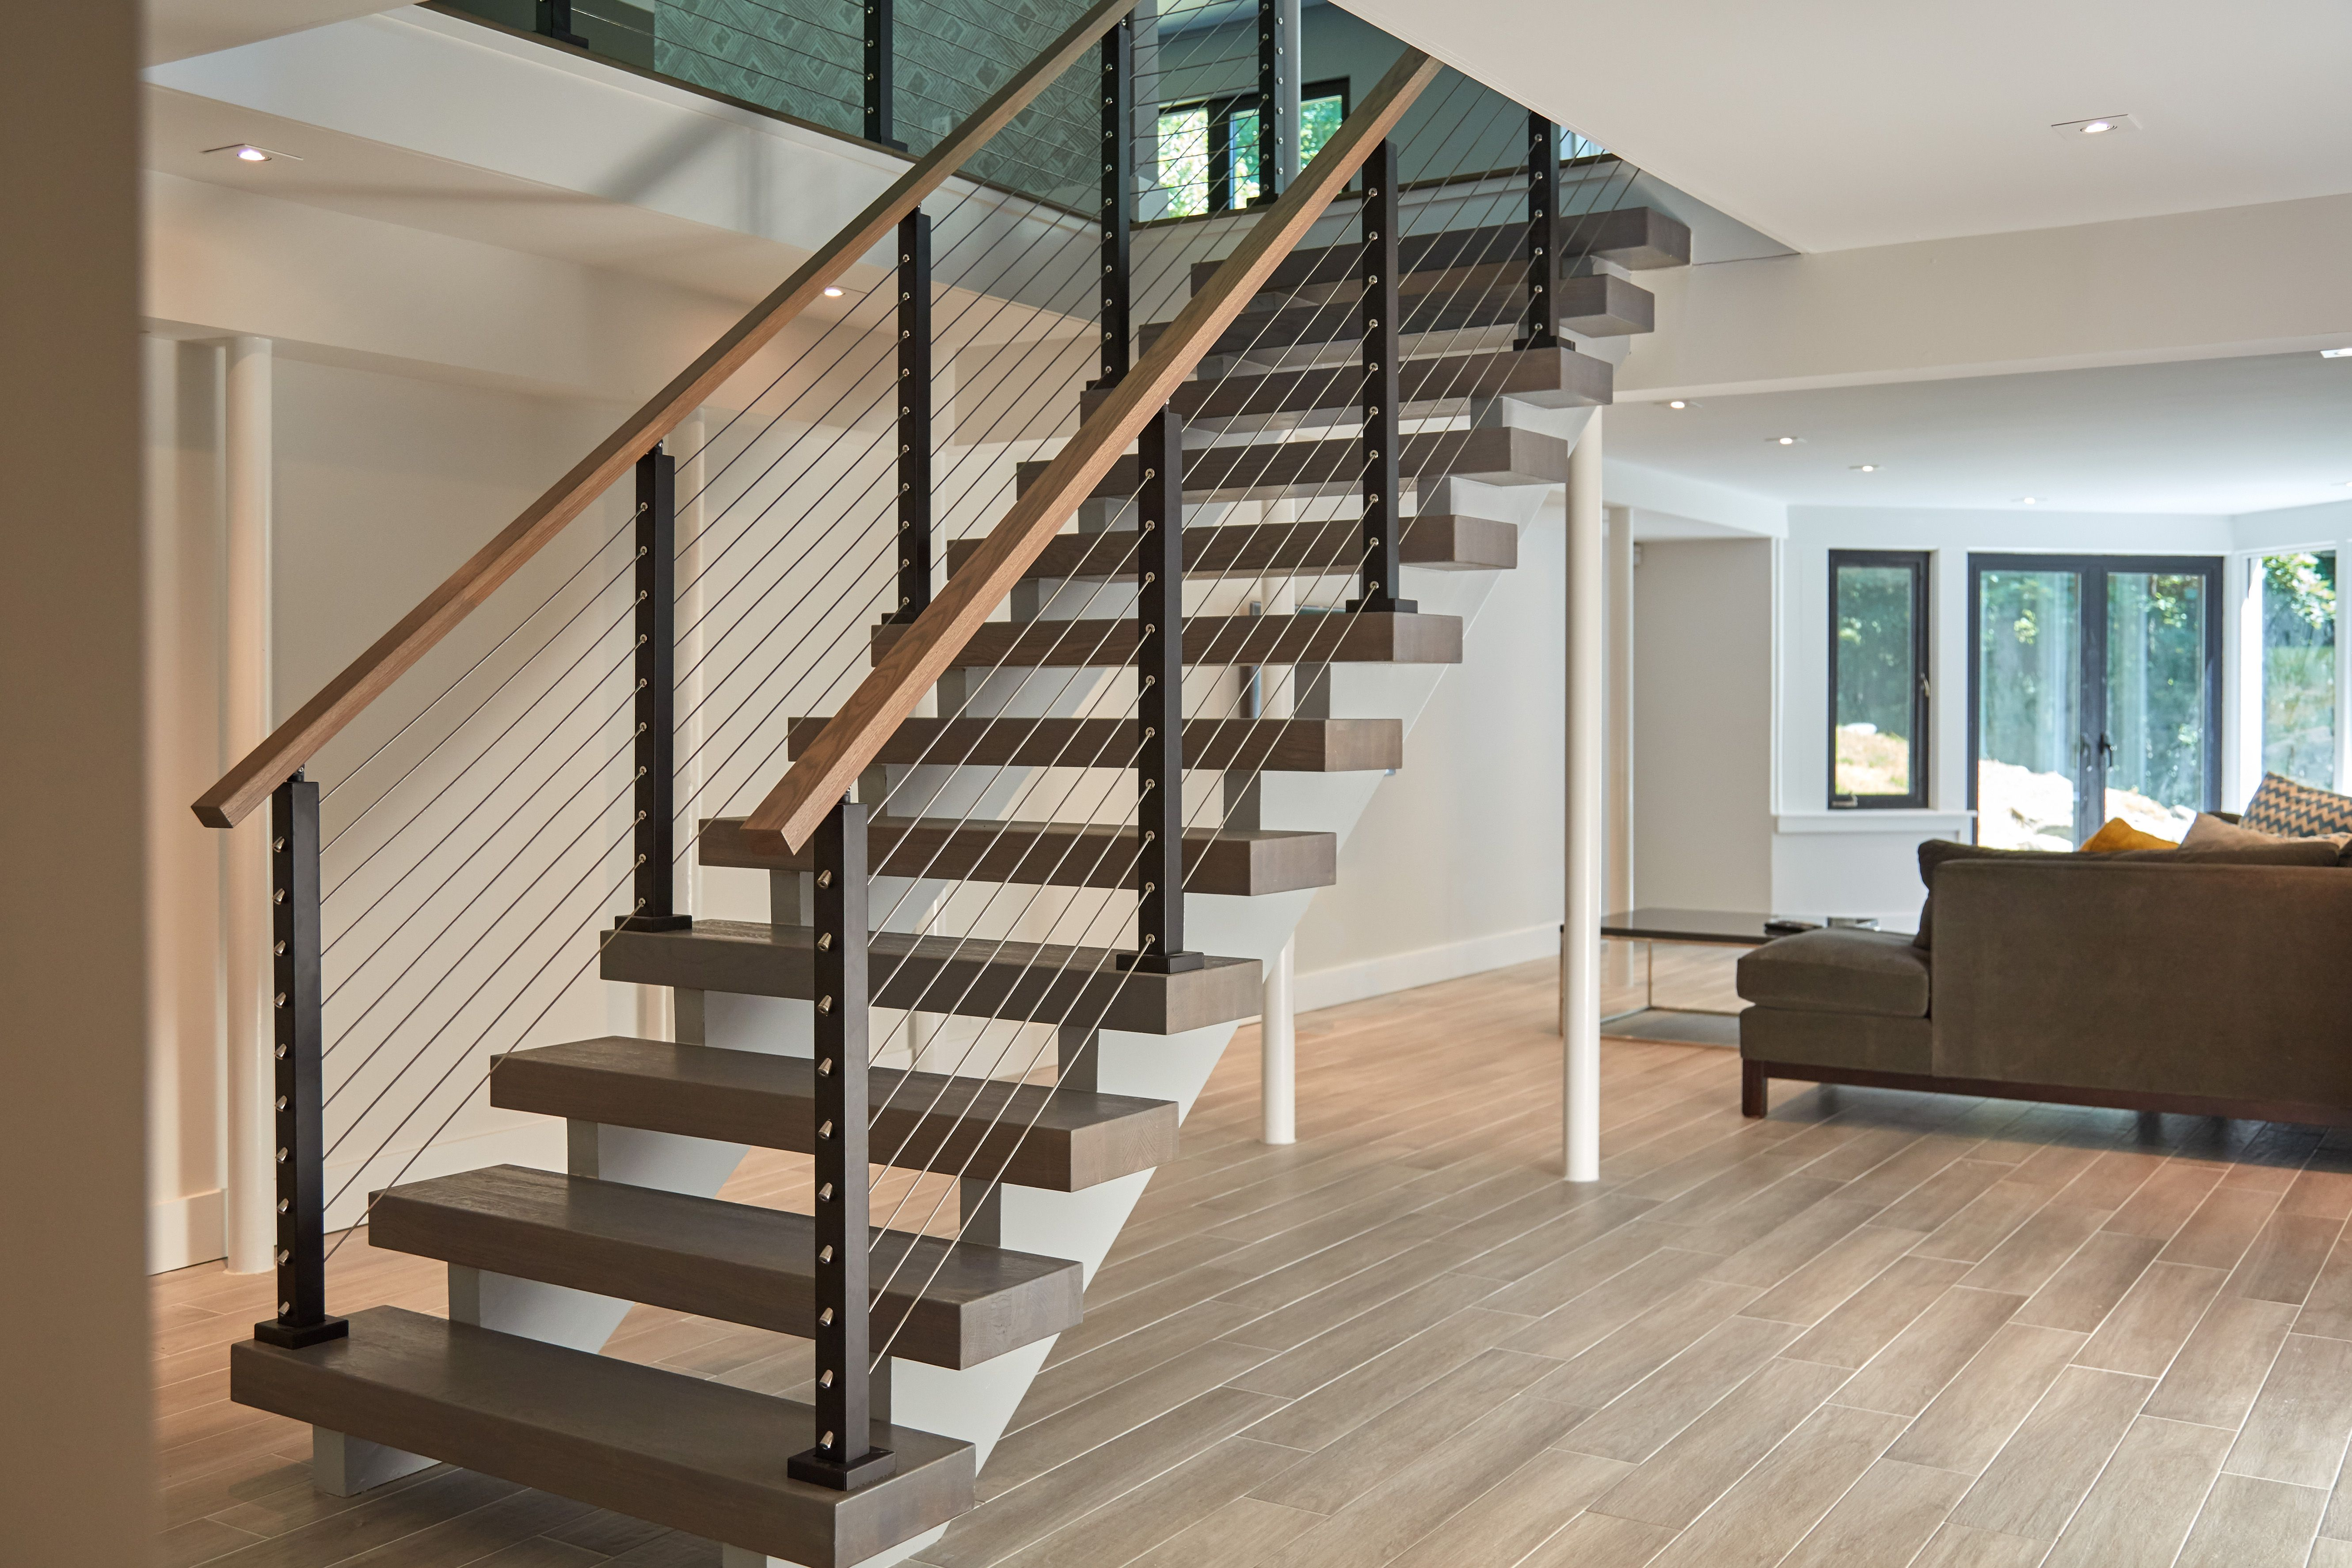 Project 255 Aluminum Cable Railing Posts Stairsupplies   Installing Aluminum Stair Railing   Baluster   Deck Stair   Balcony Deck   Railing Systems   Pressure Treated